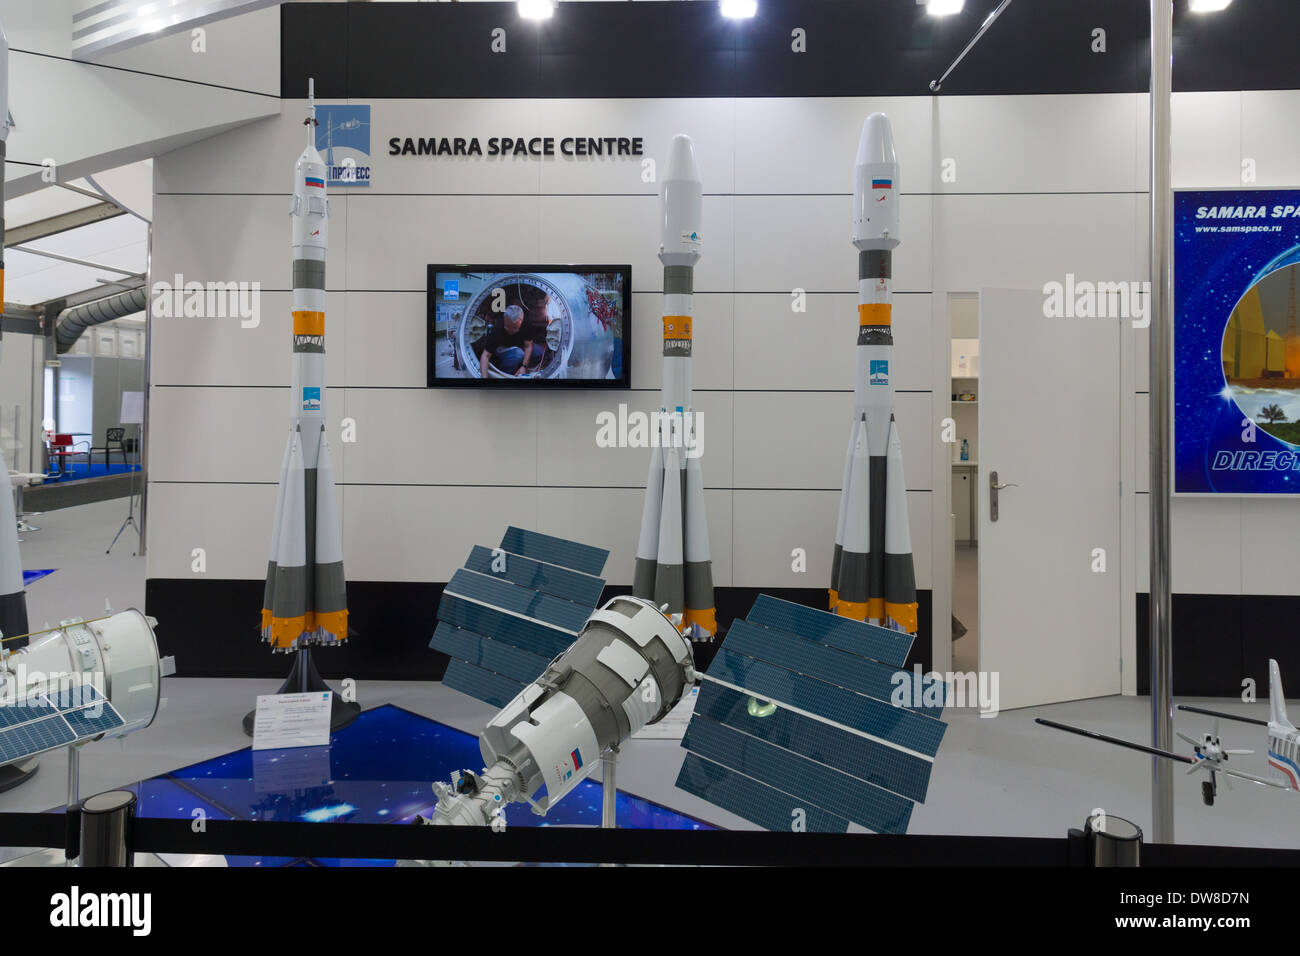 ILA Berlin Air Show 2012. Stand Russian Federal Space Agency. Roscosmos. Samara Space Center - Stock Image